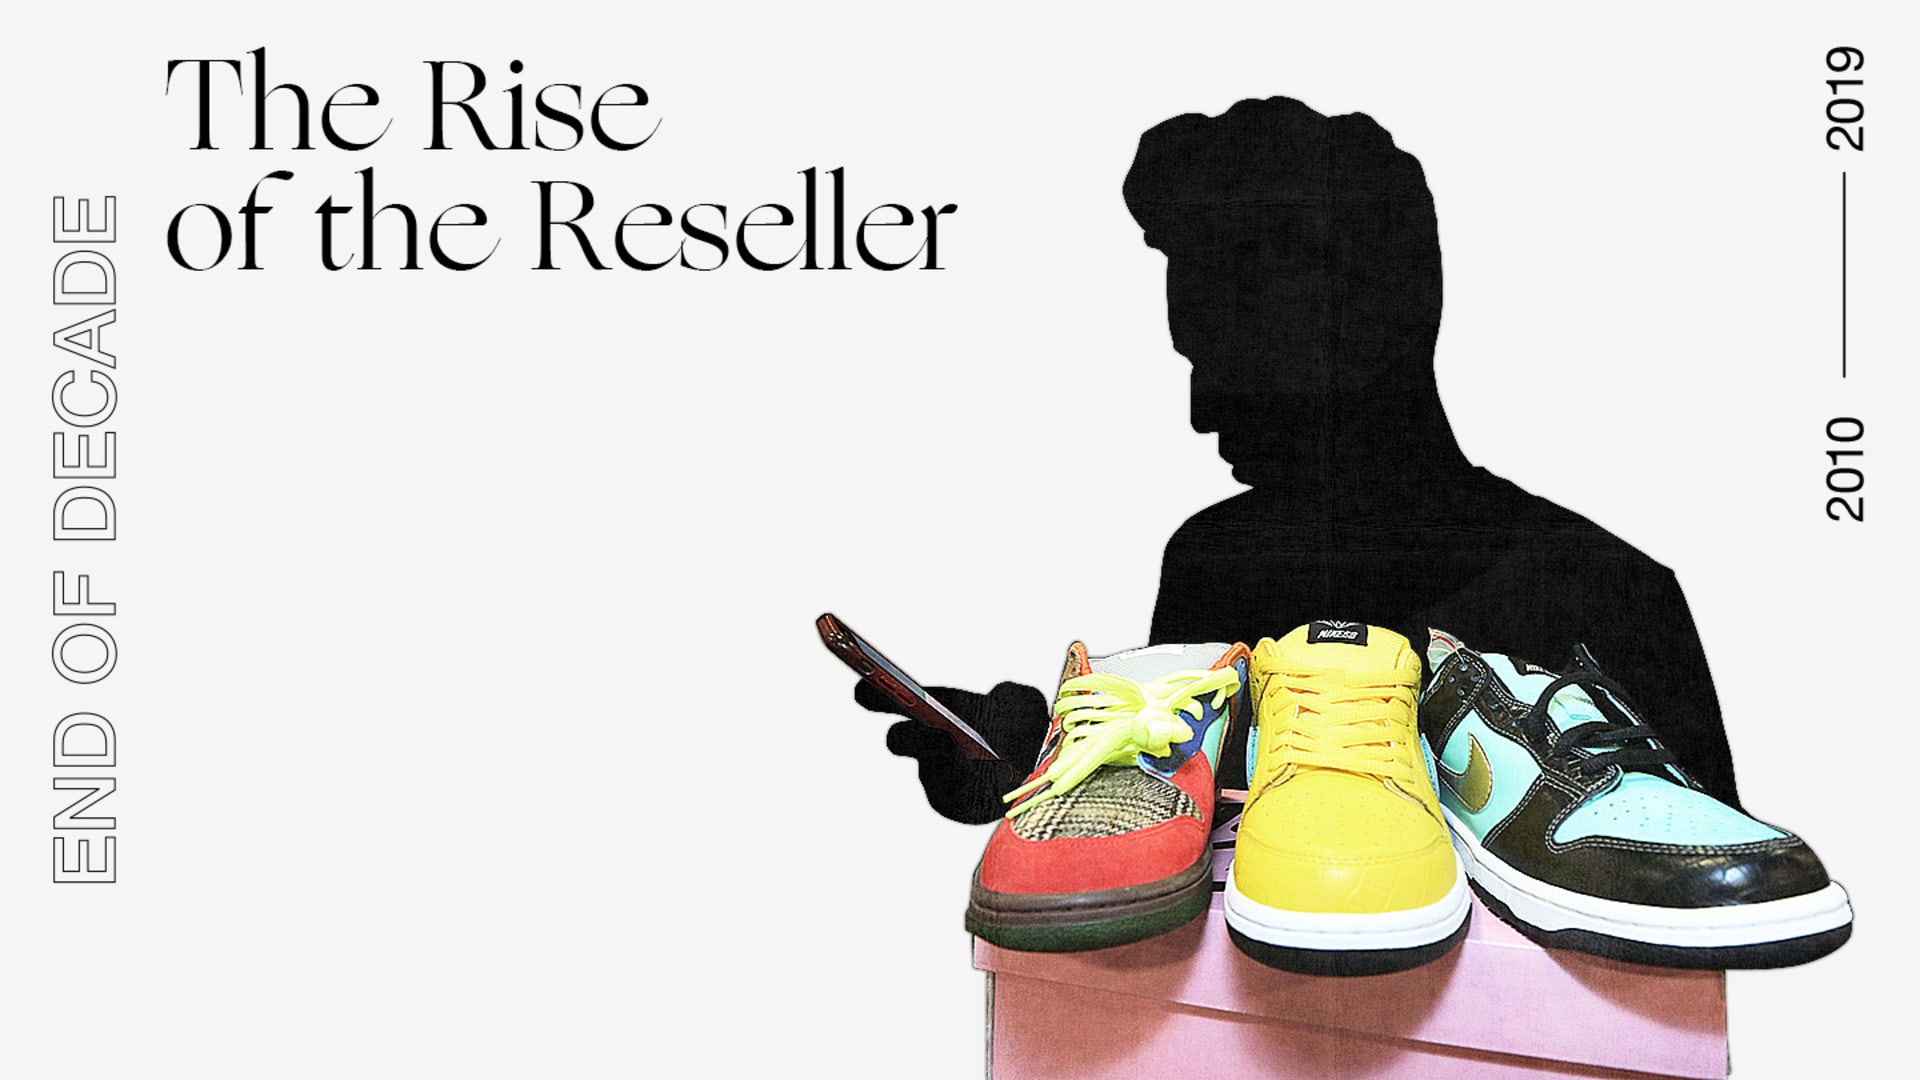 Rise of the Reseller Lead